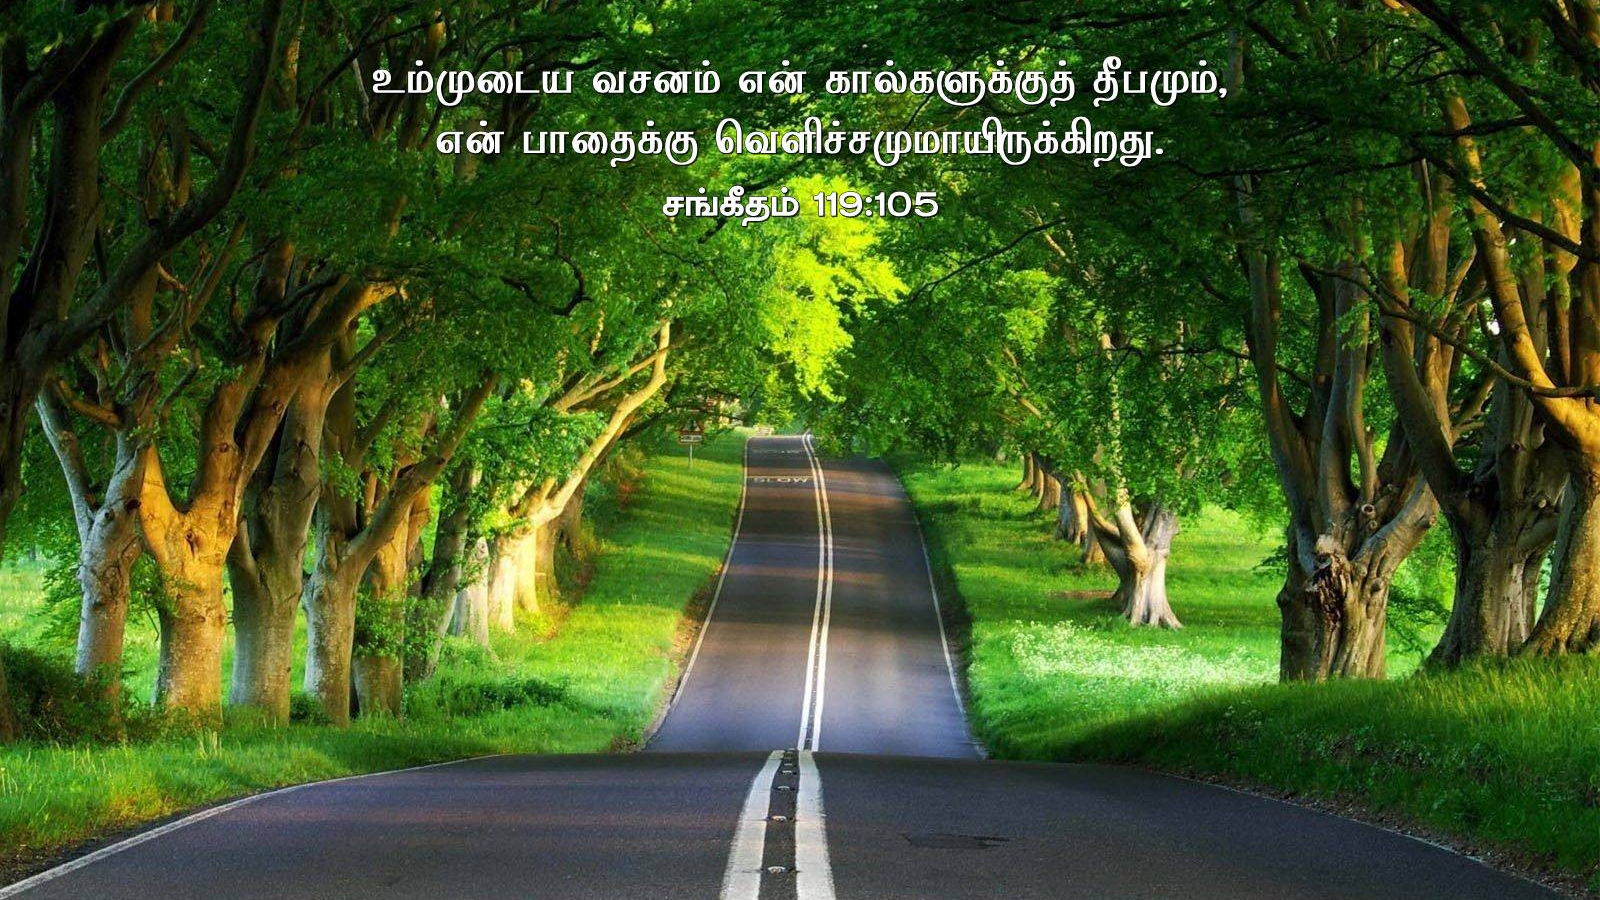 Free Download Bible Quotes Tamil Bible Verse Wallpapers Tamil Mobile Wallpapers 1600x1200 For Your Desktop Mobile Tablet Explore 49 Free Bible Wallpaper With Scriptures Free Bible Verses Wallpaper Bible